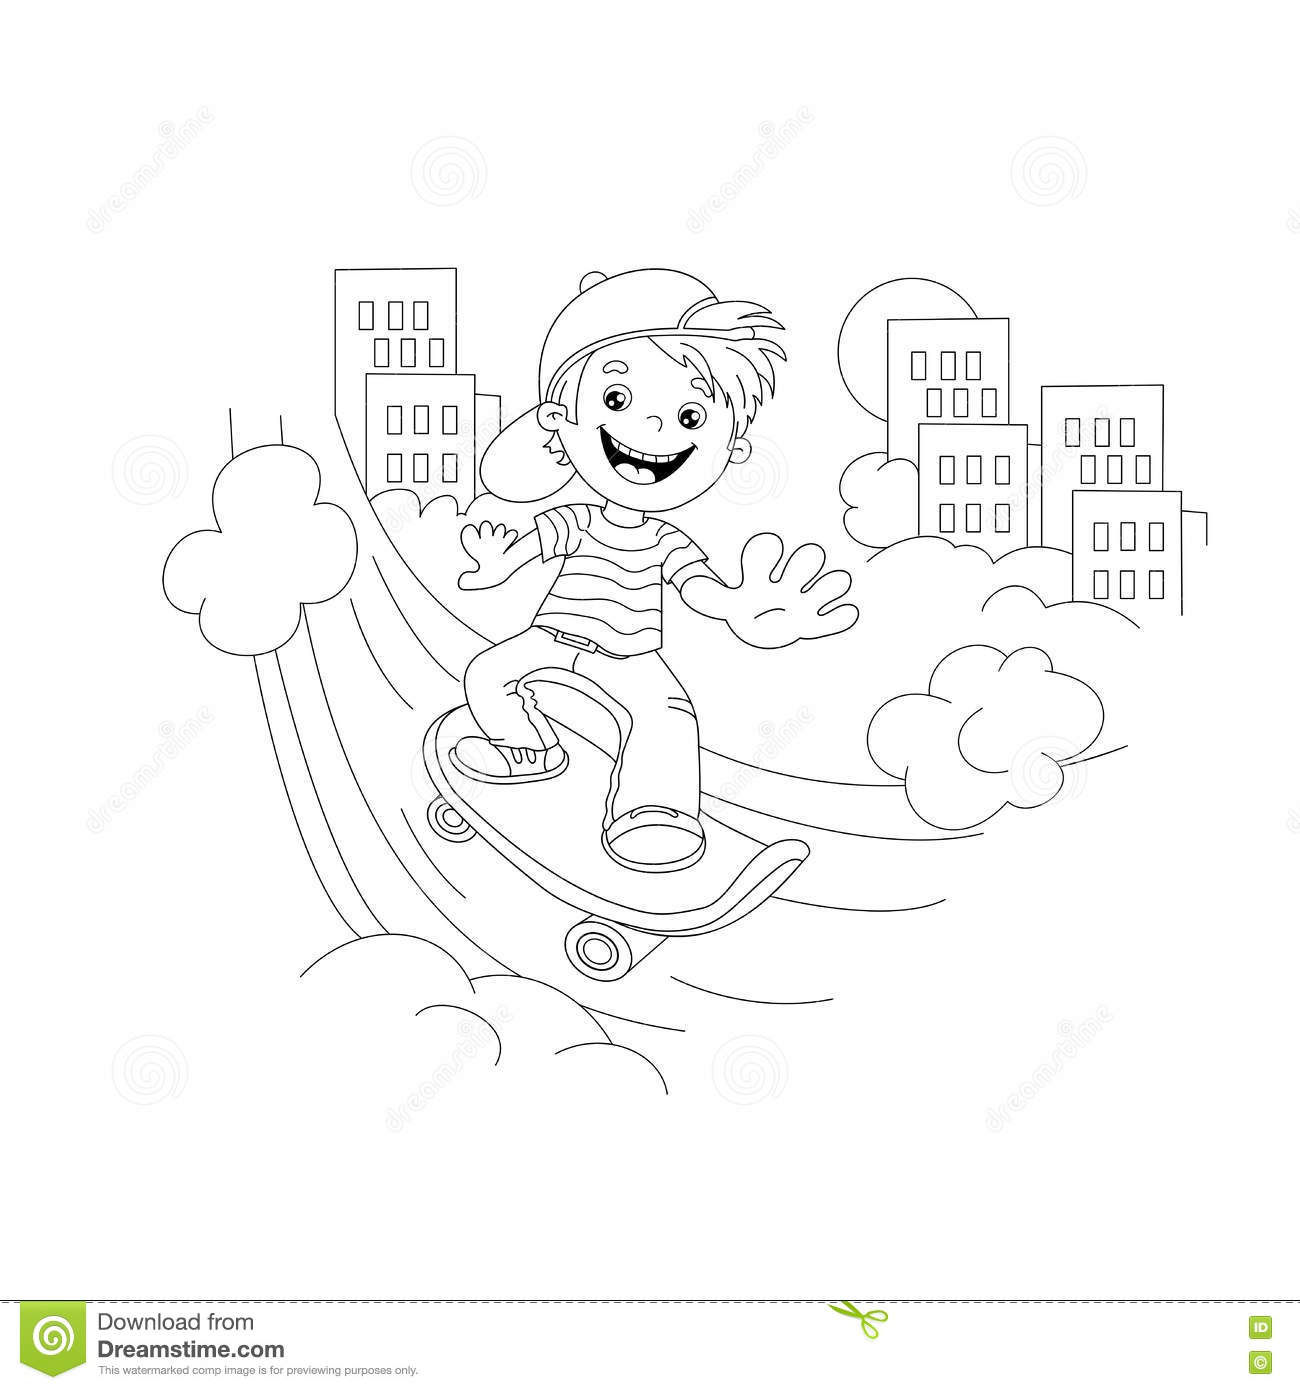 Coloring Page Outline Of Cartoon Boy On The Skateboard In